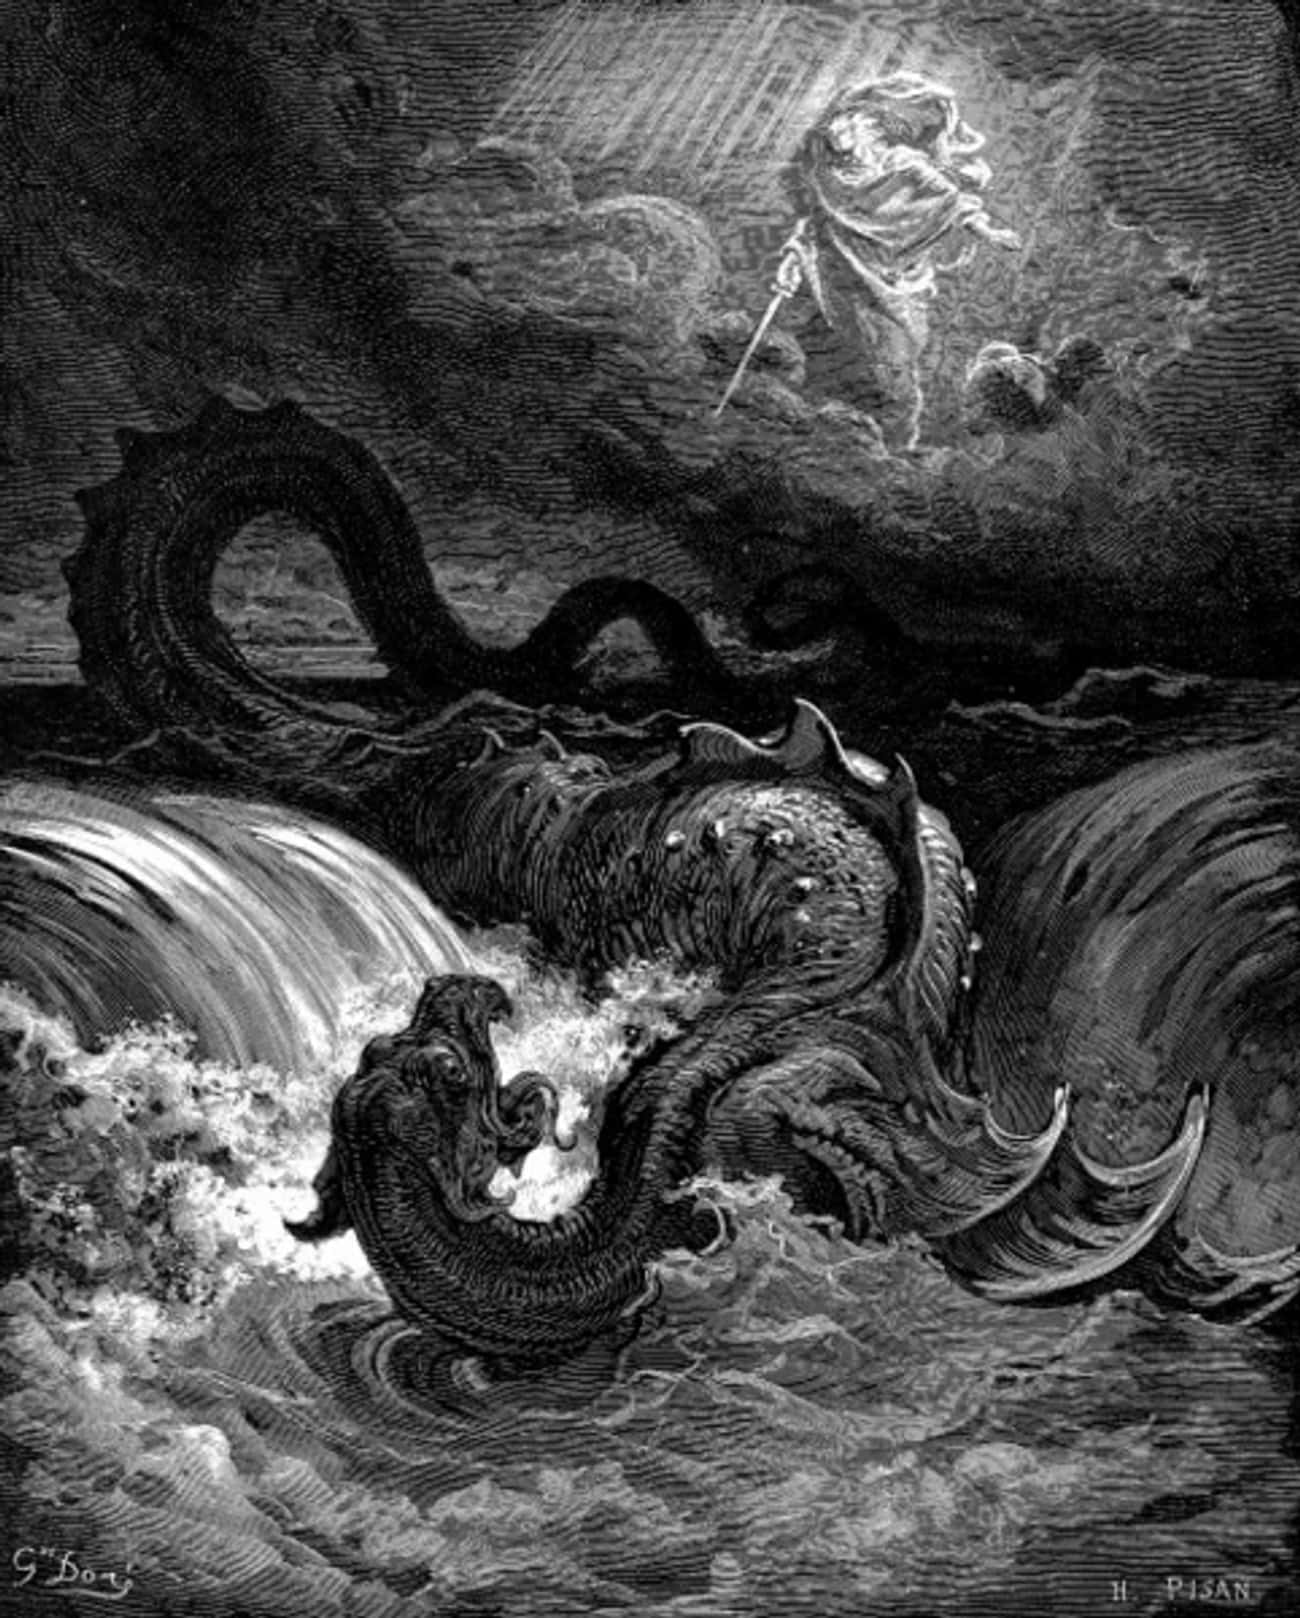 Leviathan: Prince Of Hell And  is listed (or ranked) 3 on the list The Hierarchy Of Hell: The Demons Under Satan Who Run The Underworld (And What They Do)